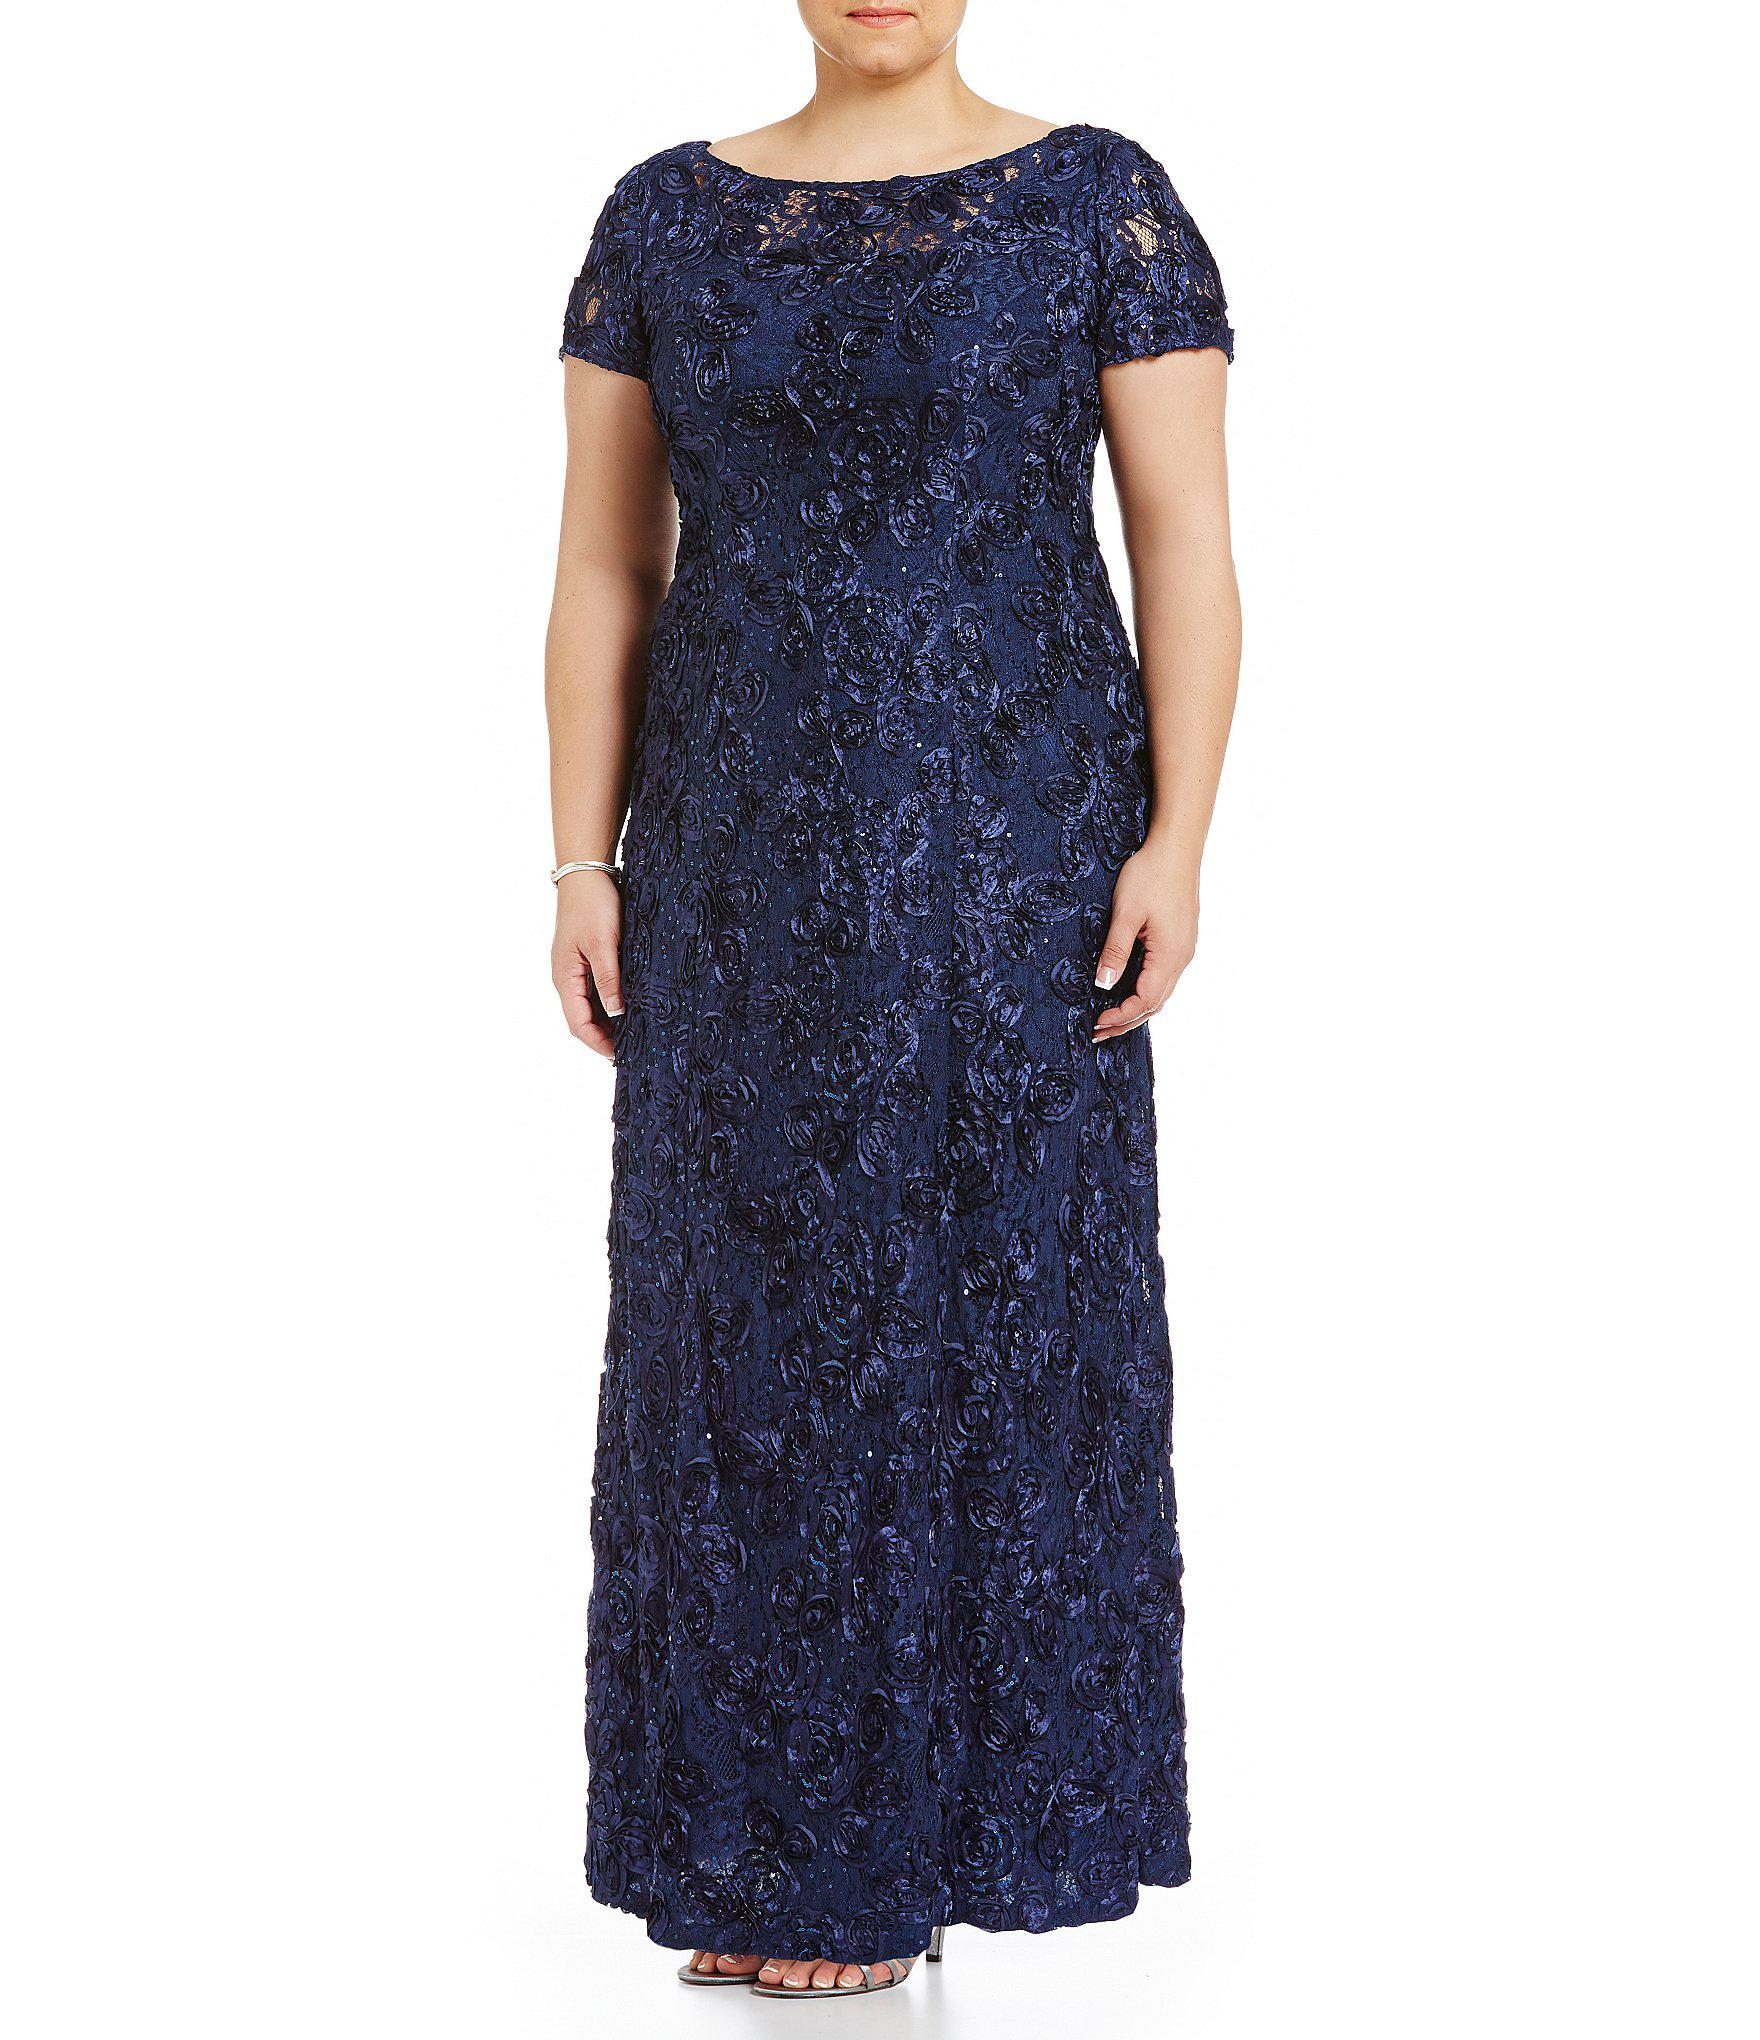 349aee72c8d0 Alex Evenings Plus Size Floral Rosette Short Sleeve A-line Gown in ...